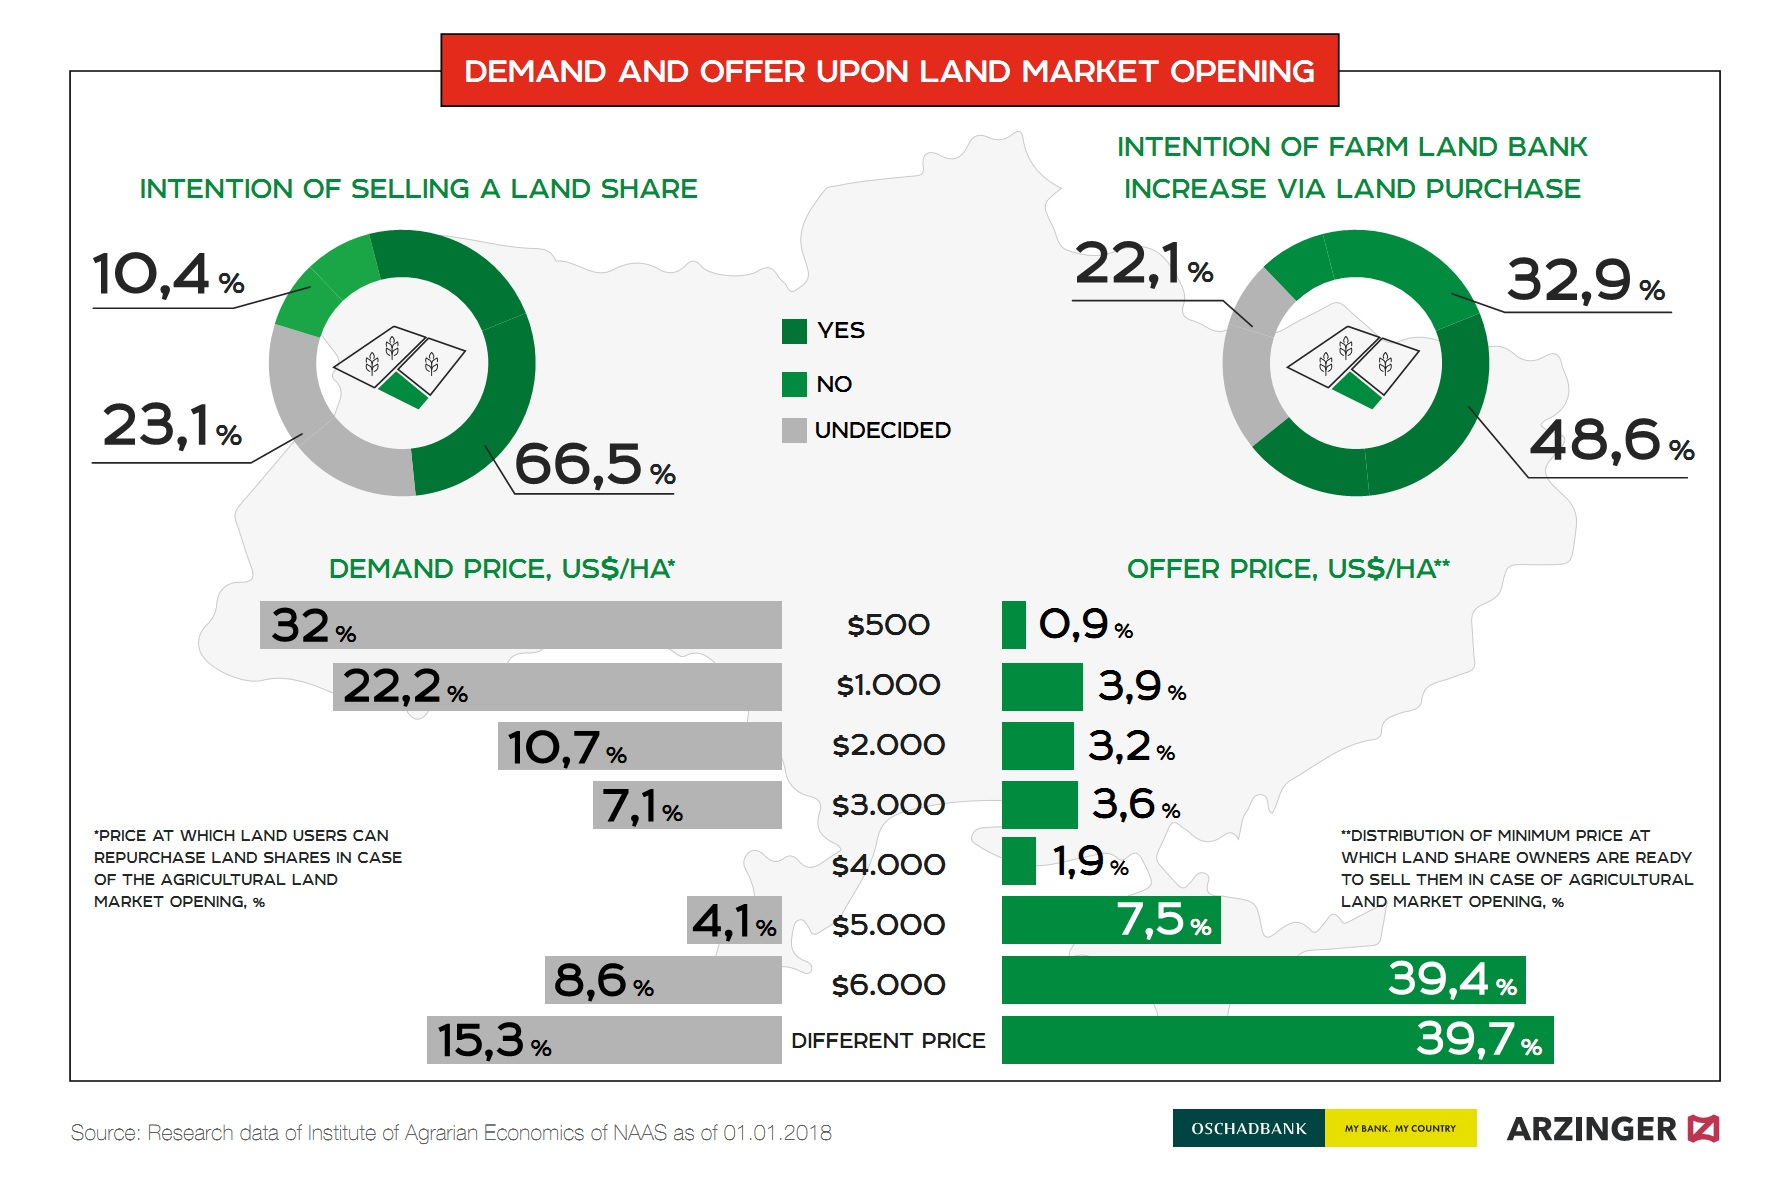 Demand and offer upon land market opening in Ukraine (click for full resolution)